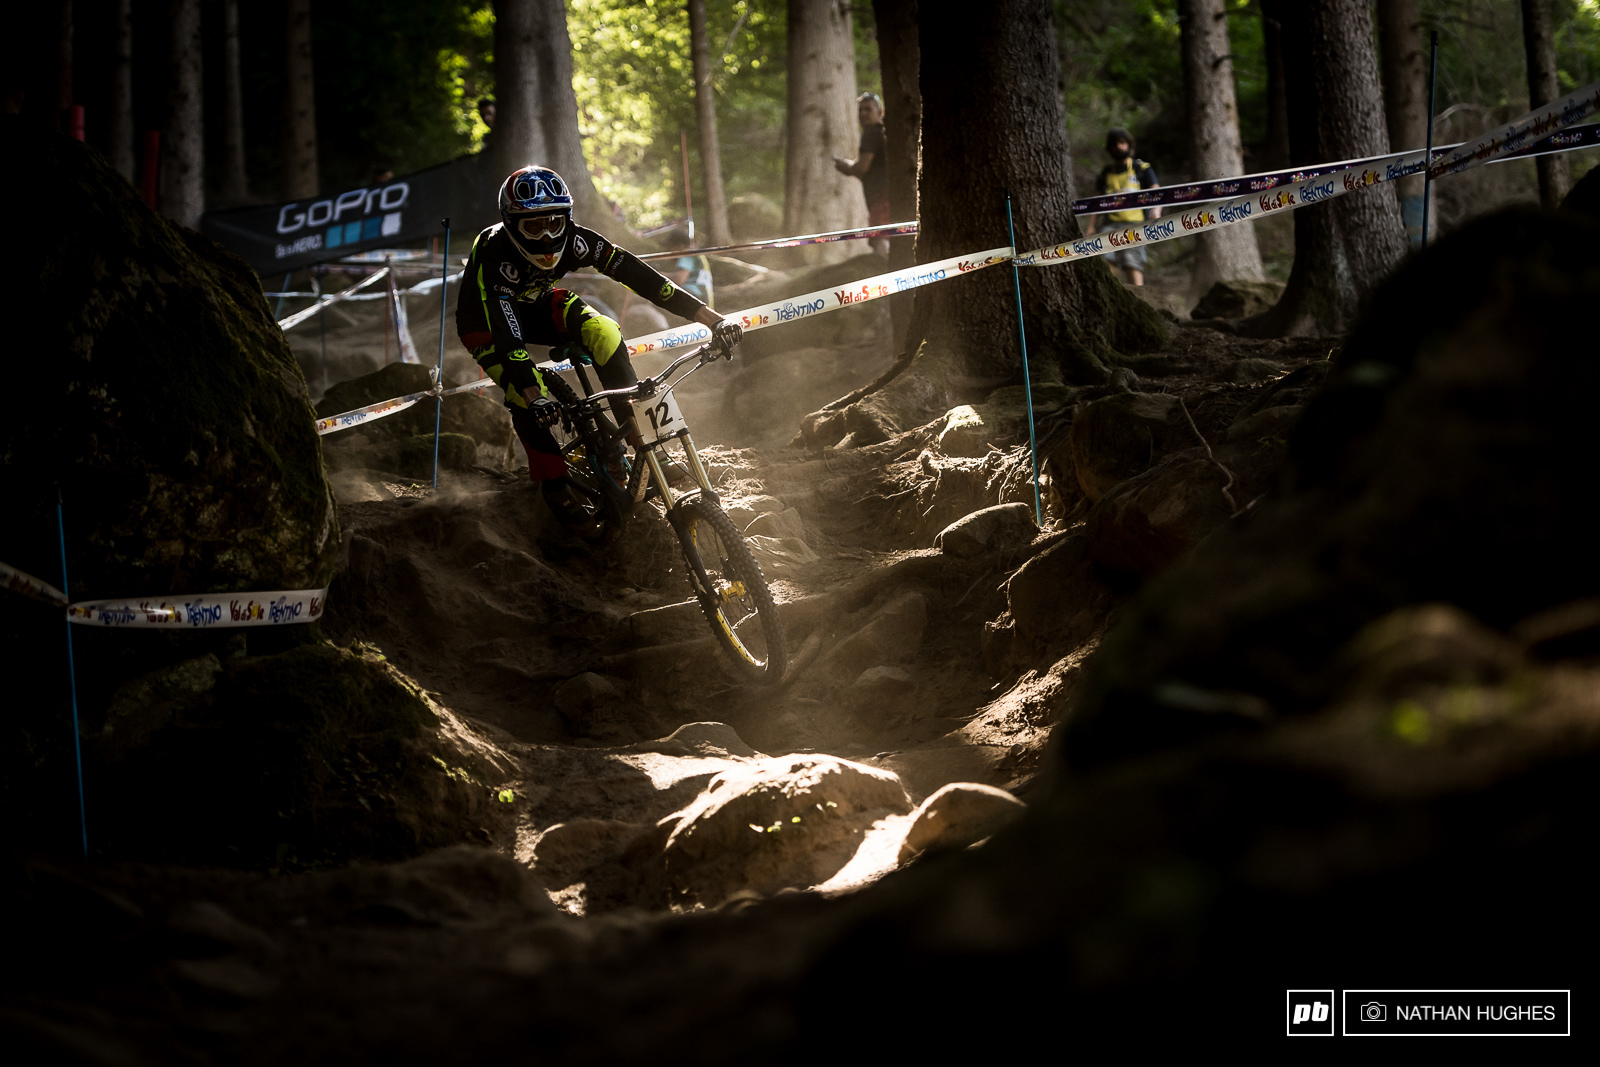 Florent Payet diving into another one of Val di Sole signature switchbacks.